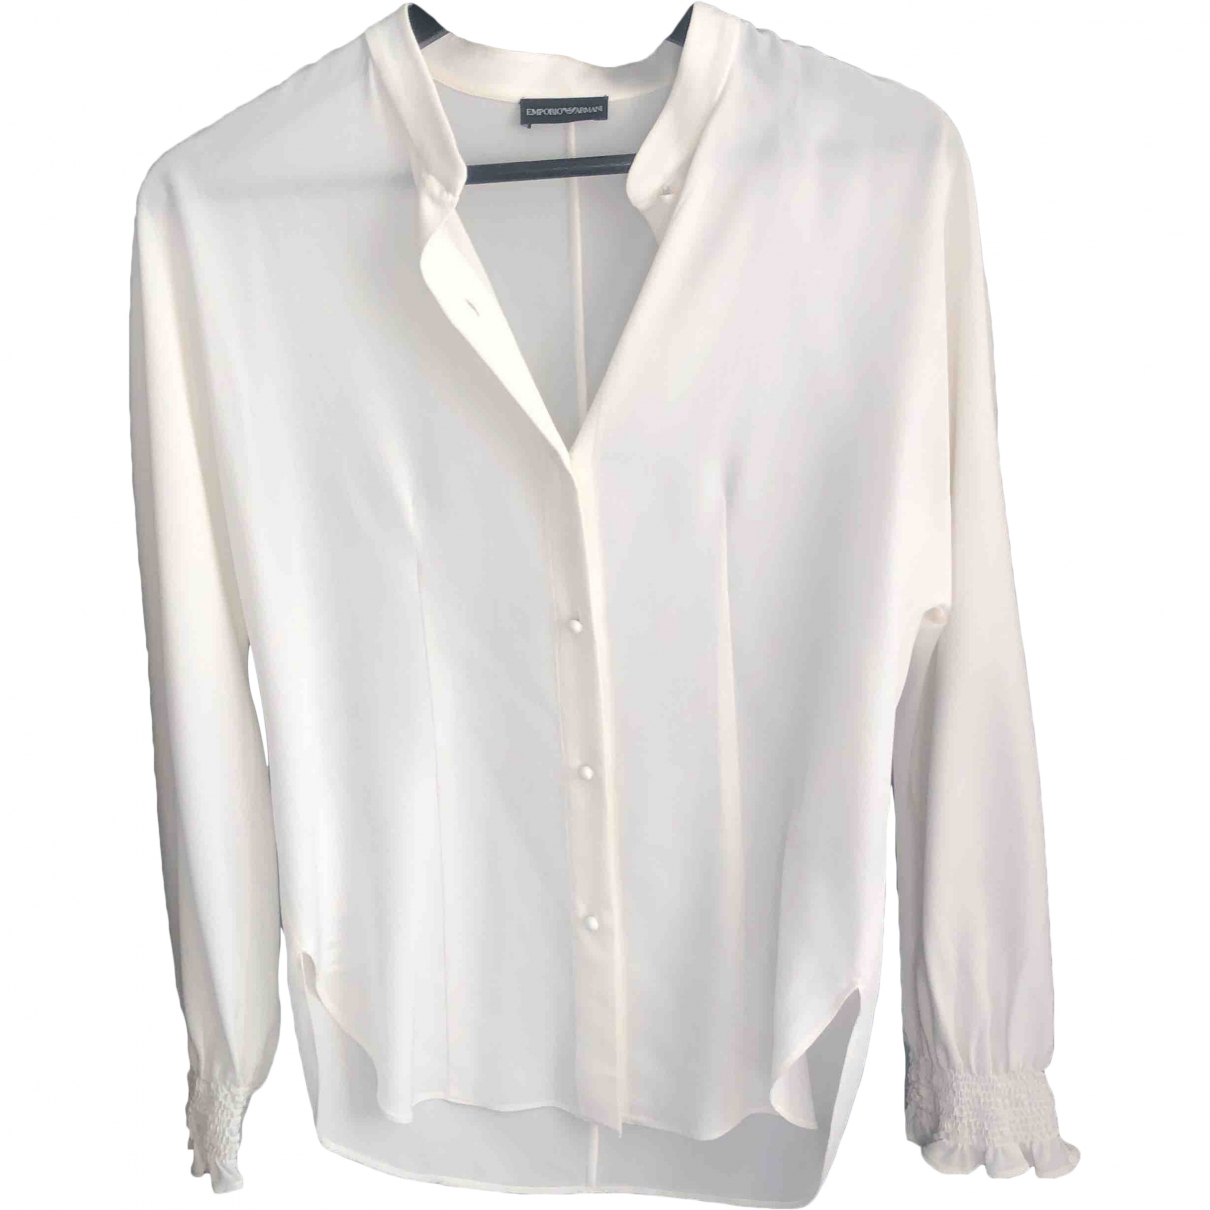 Emporio Armani \N Top in  Weiss Seide